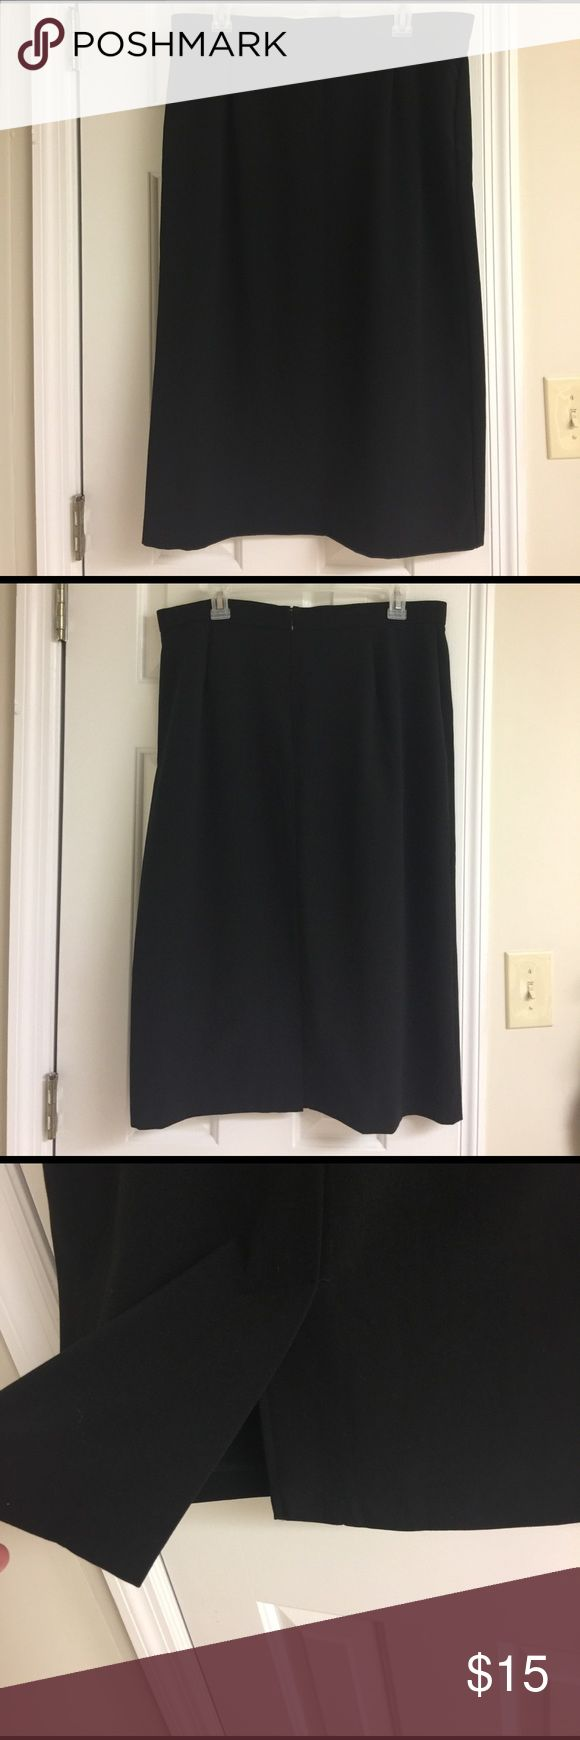 Black Calf Length Skirt Sz. 14 by Briggs New York Perfect for the office or a night on the town. Size 14 black calf length skirt by Briggs New York. Small slit at center on bottom back part of skirt. Back zipper. Briggs New York Skirts